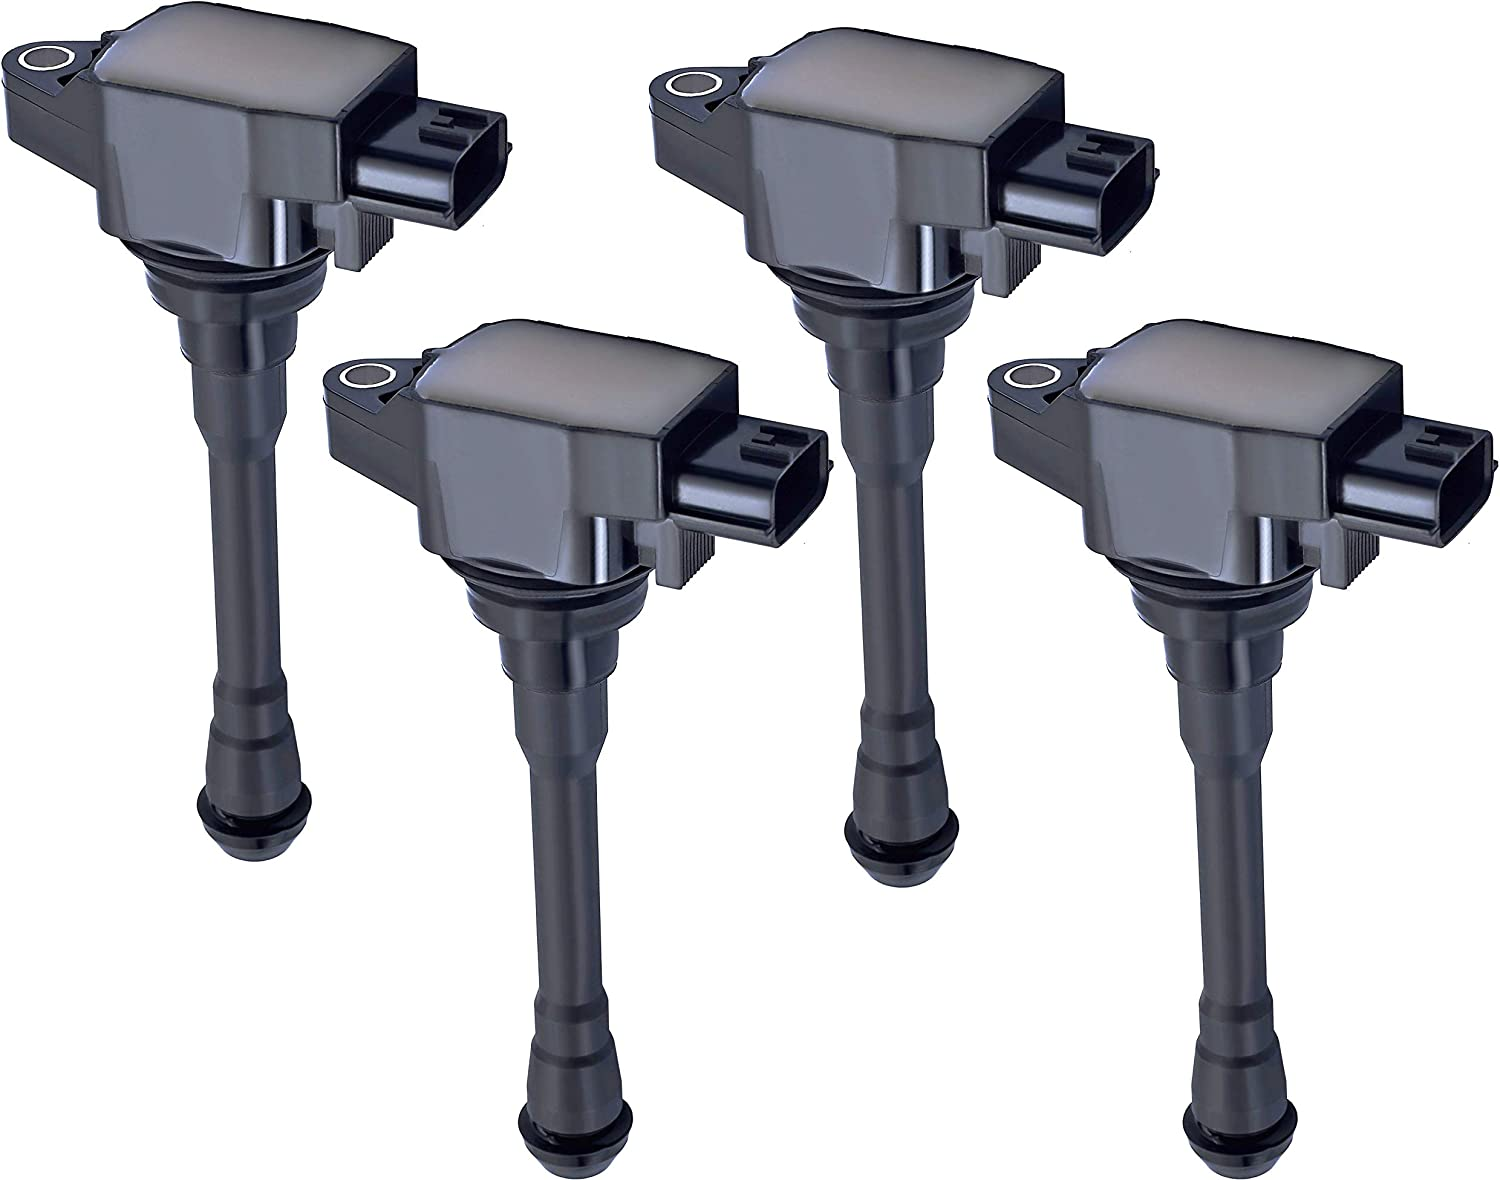 Amazon Com Ena Pack Of 4 Ignition Coil Compatible With 2013 2017 Nissan Nv200 2015 2016 Chevrolet City Express 2 0l Van 4 Door Automotive